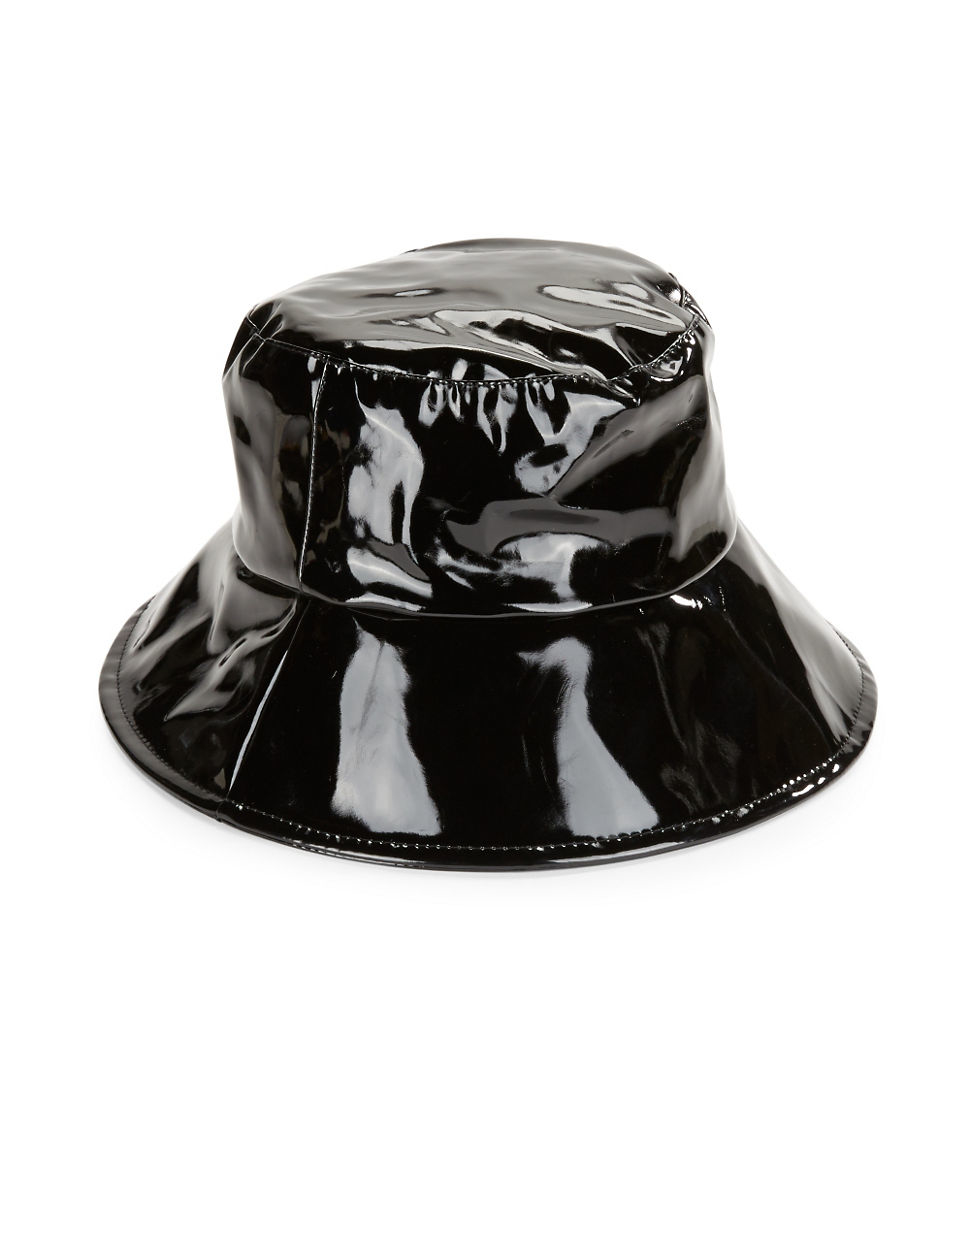 August Accessories Faux Patent Leather Bucket Hat in Black - Lyst b7f2a17b1d8